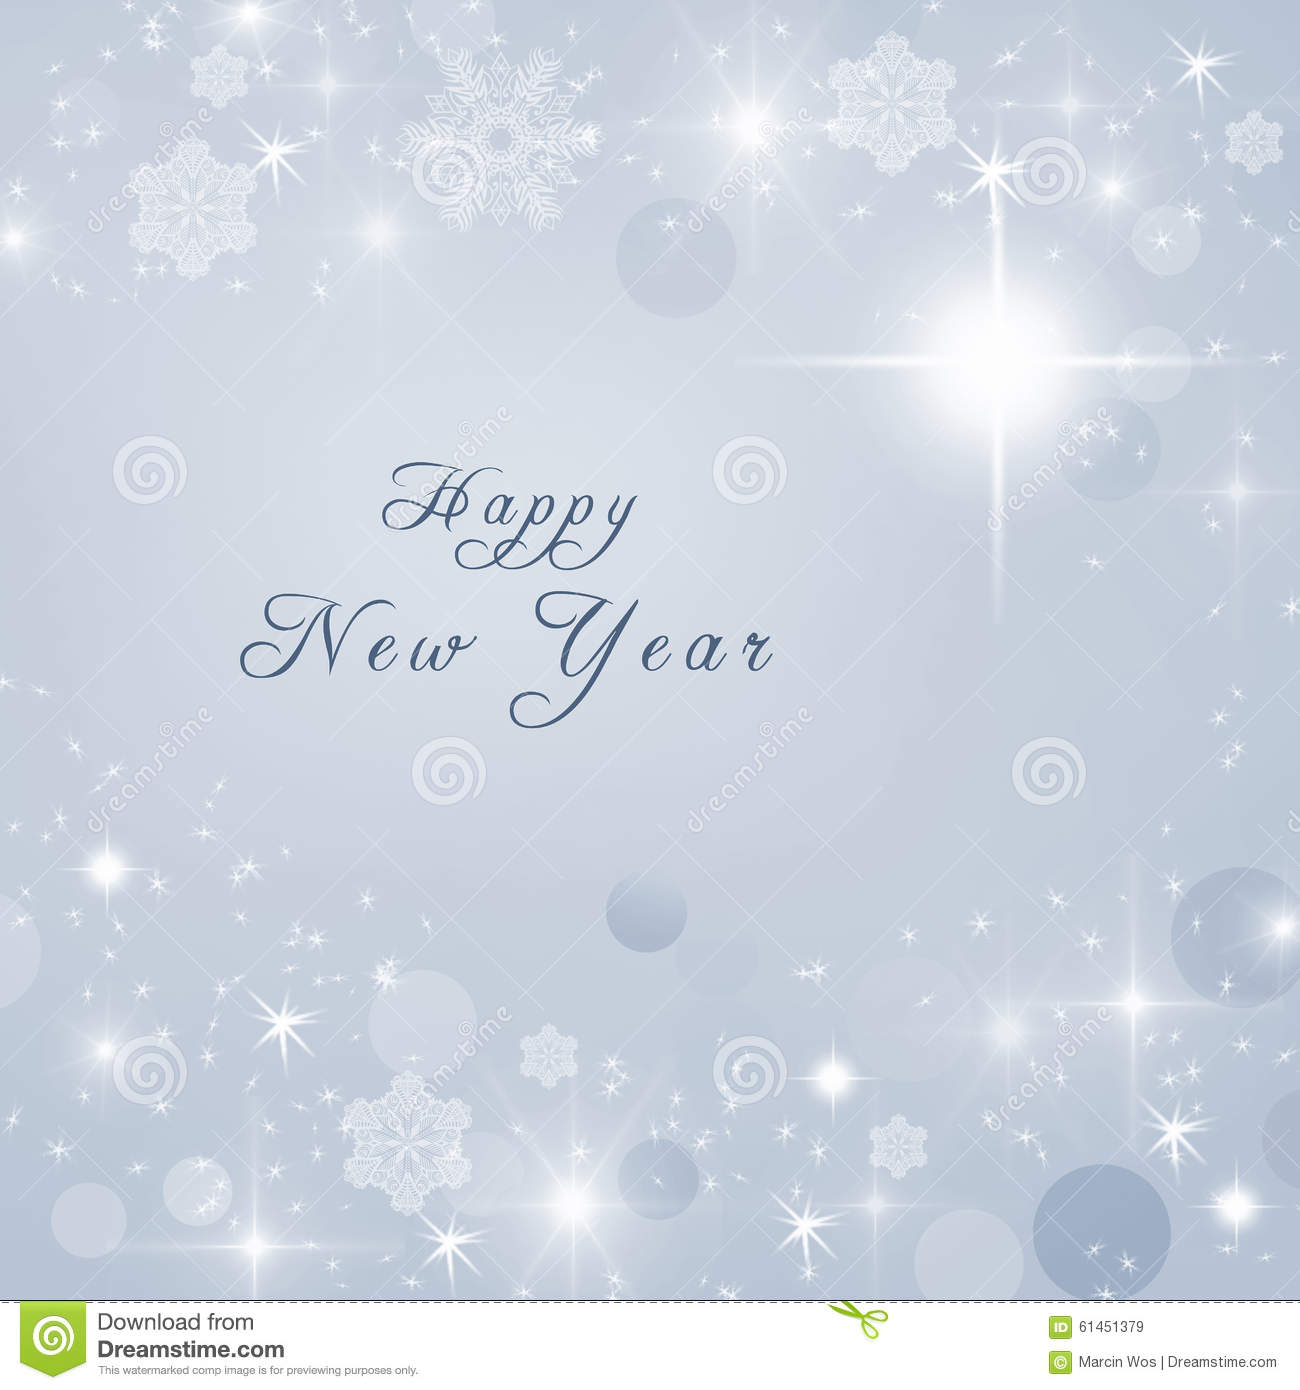 happy new year text written on grey bright sparkly winter background new year card